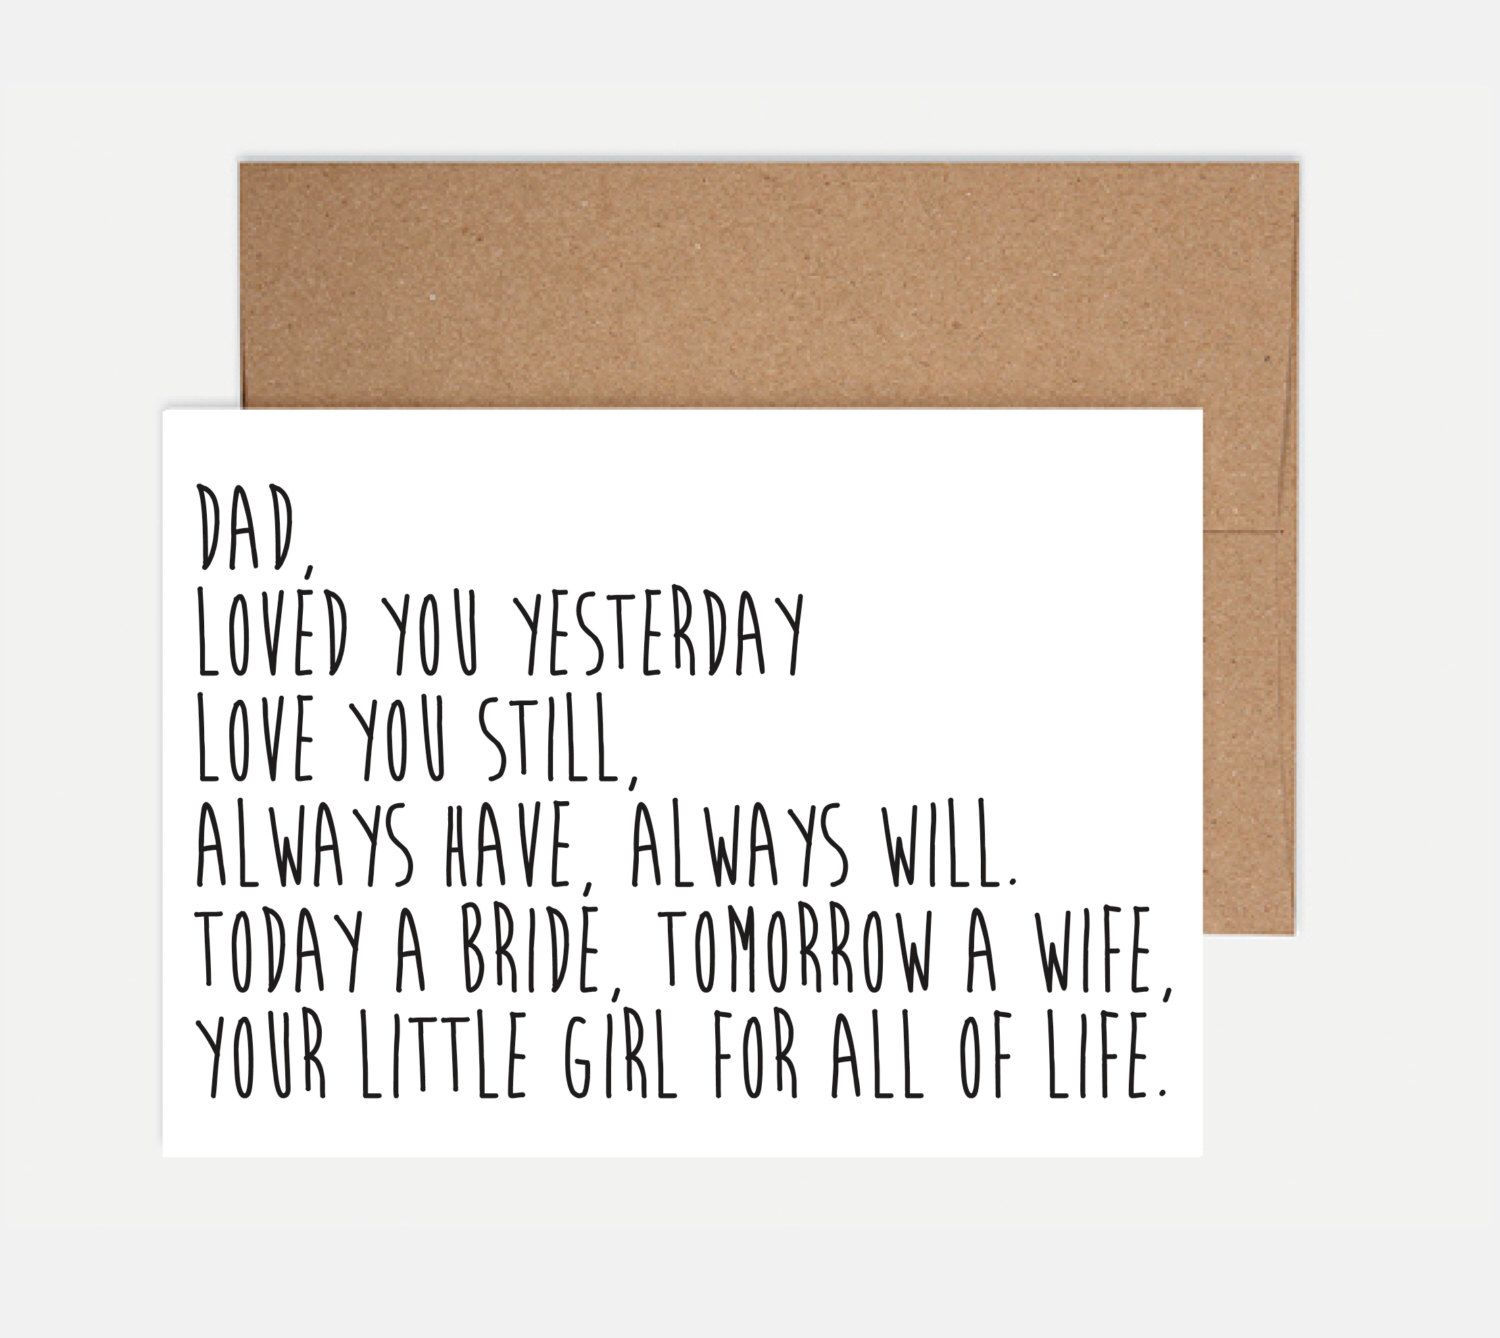 Father Of The Bride Card Wedding By Shortbchampers On Etsy Https